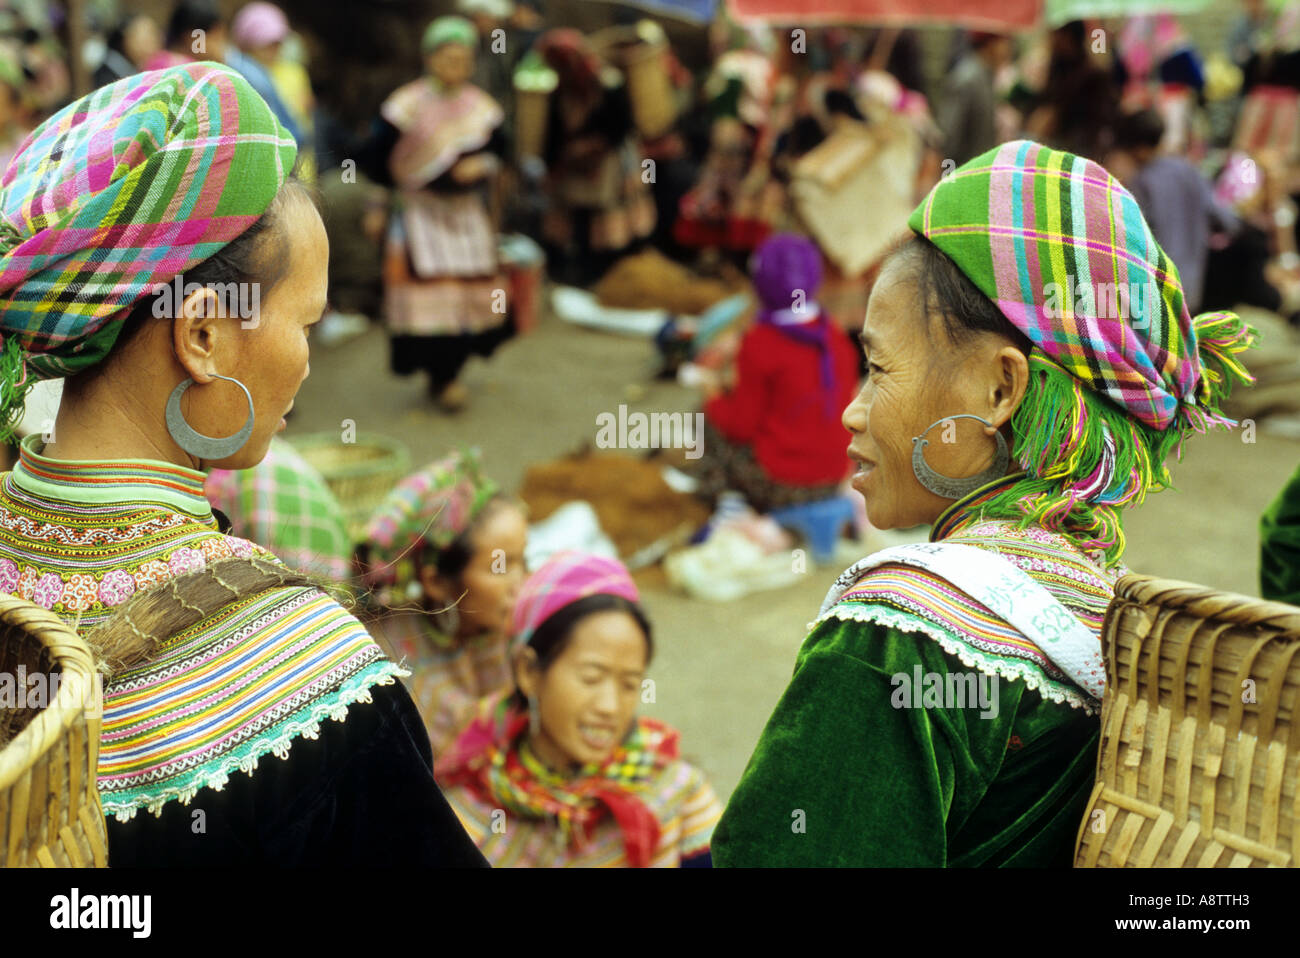 Two Flower Hmong women in colourful traditional clothing talking at the Sunday market, Bac Ha, NW Viet Nam Stock Photo